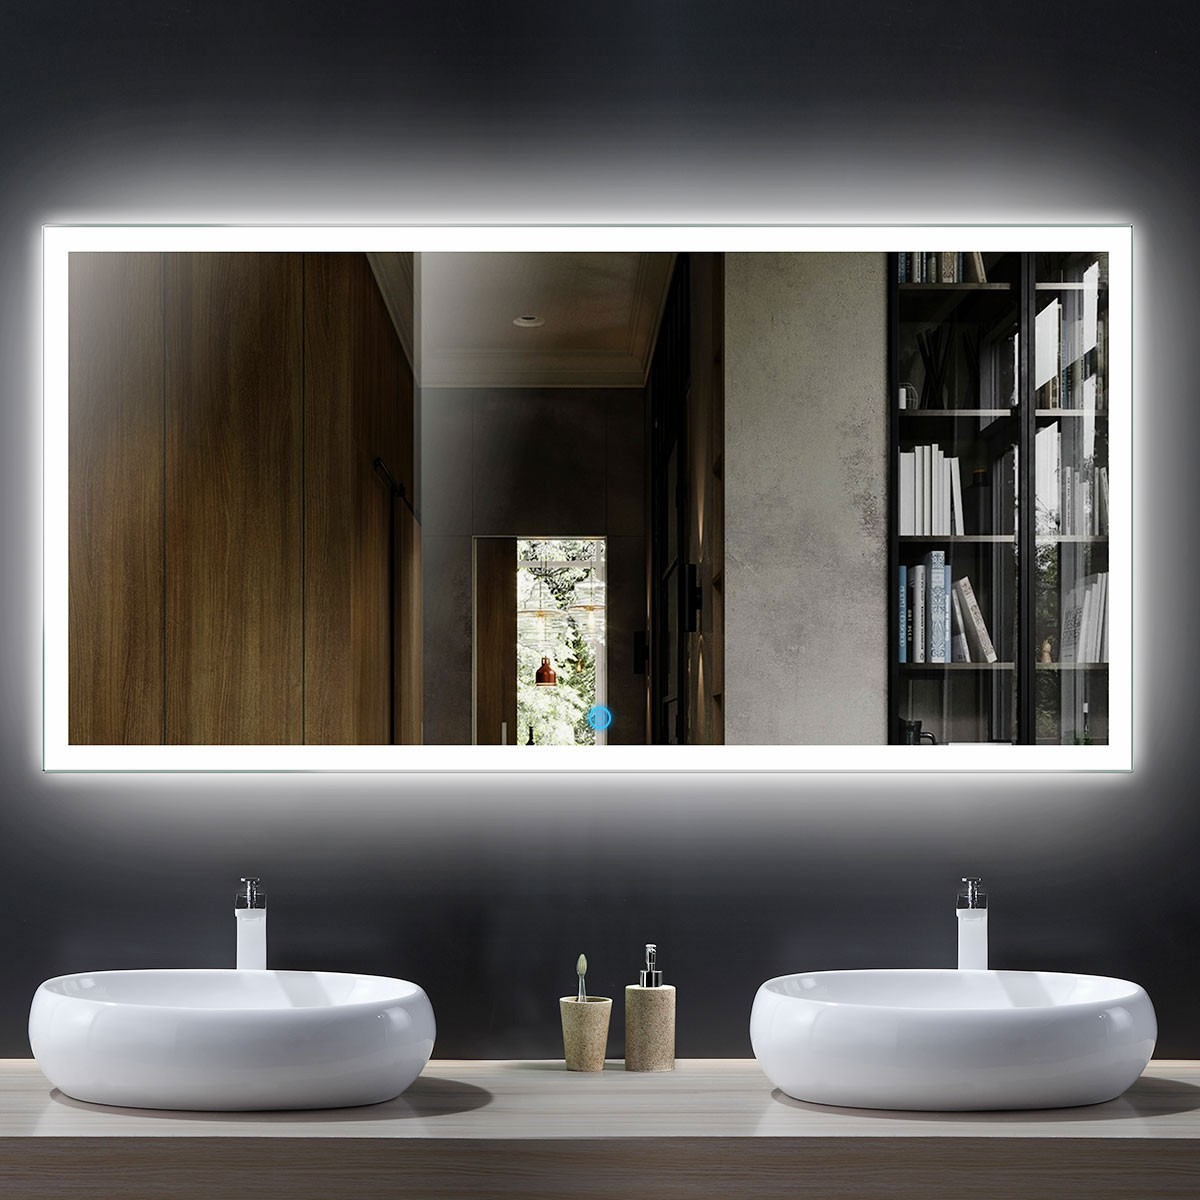 55 x 28 In Horizontal LED Bathroom Mirror with Touch Button (DK-OD-N031-D)